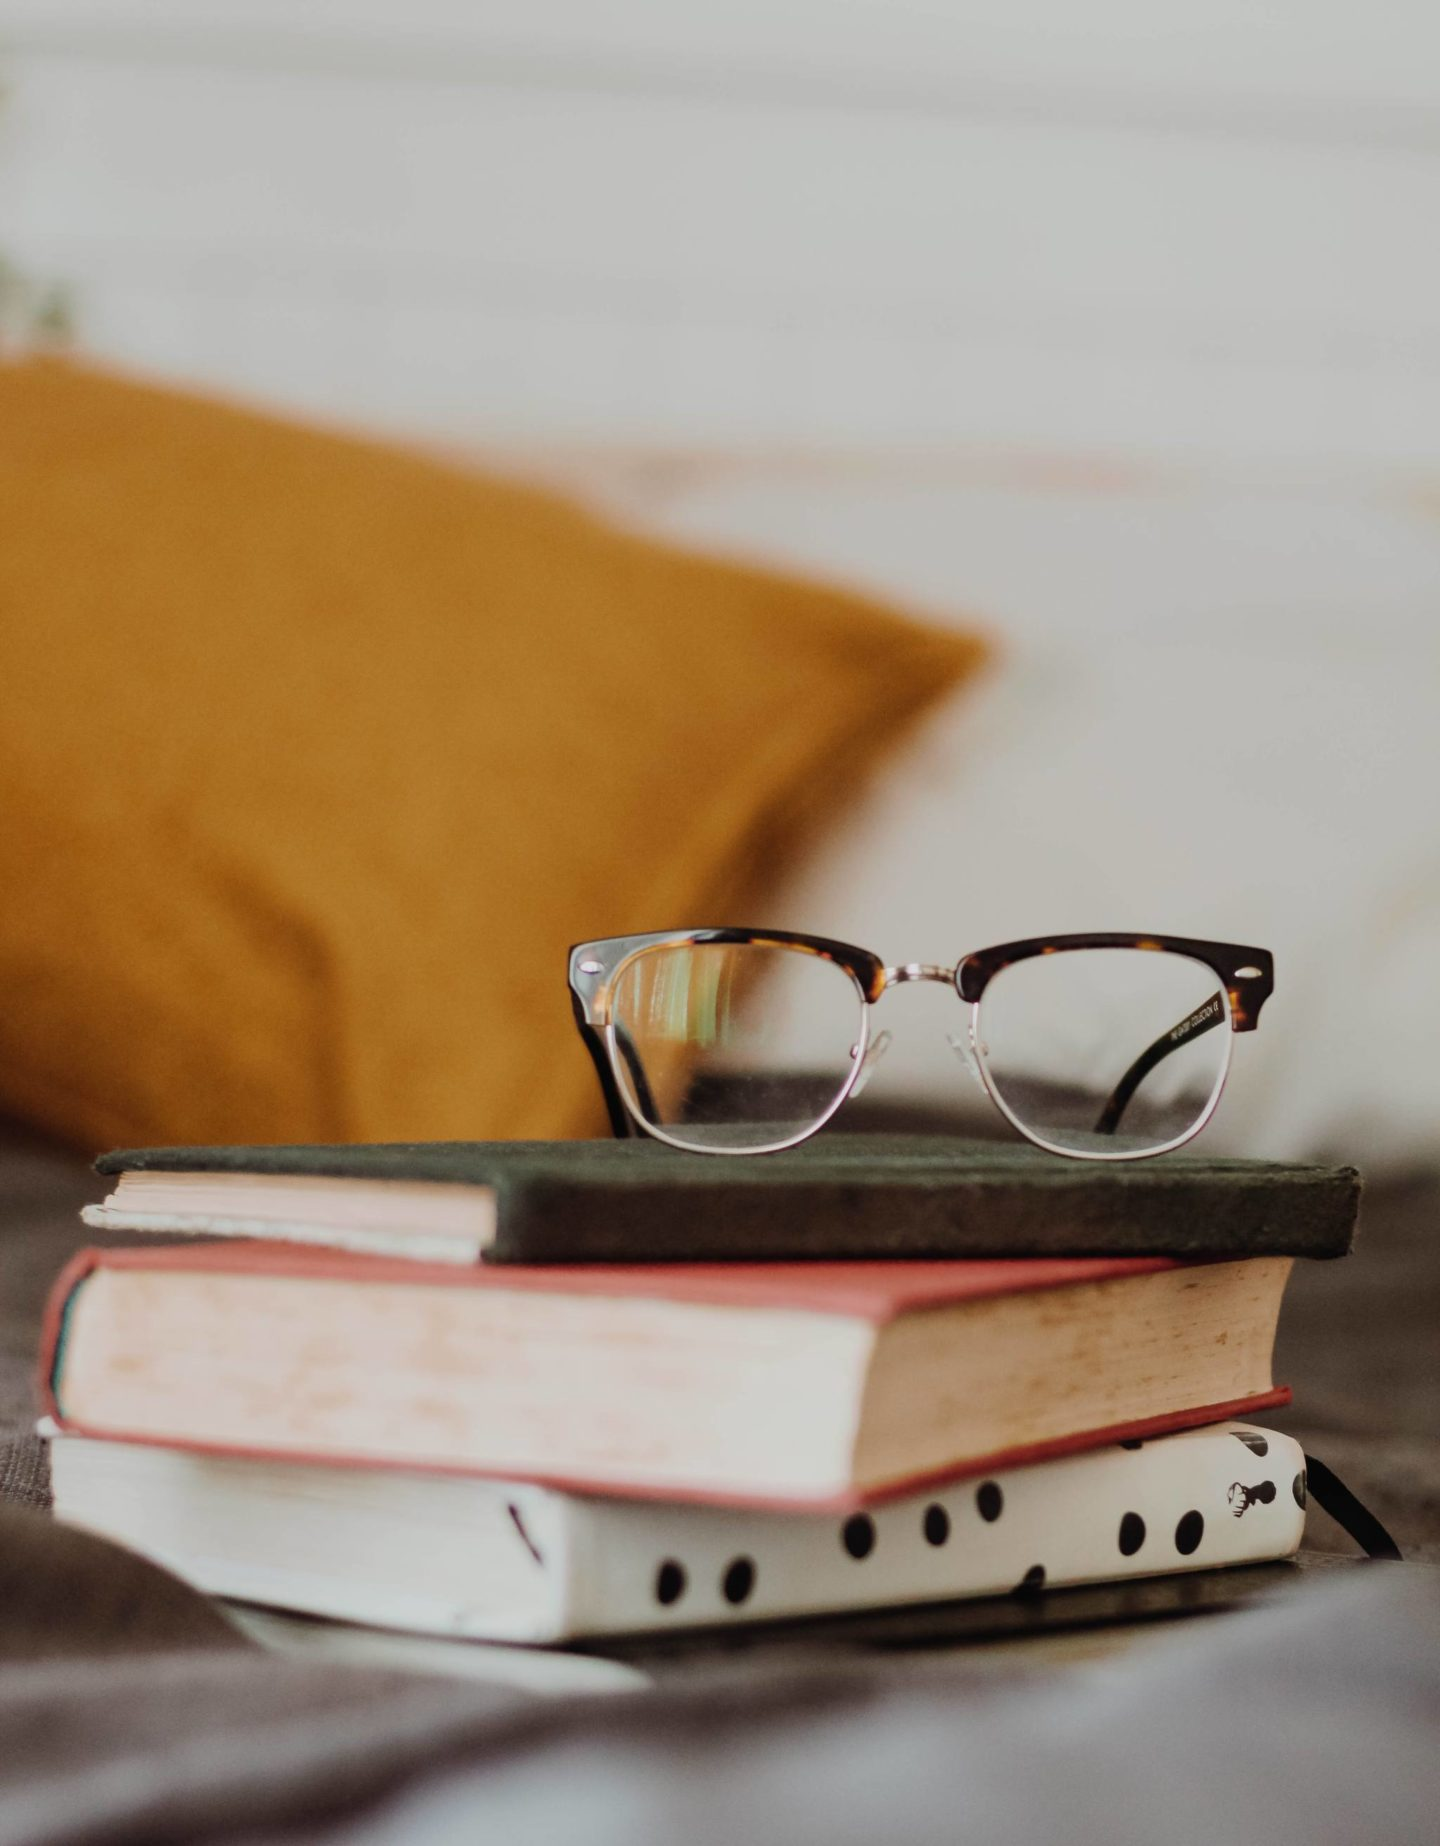 small pile of notebooks and books with a pair of glasses on top